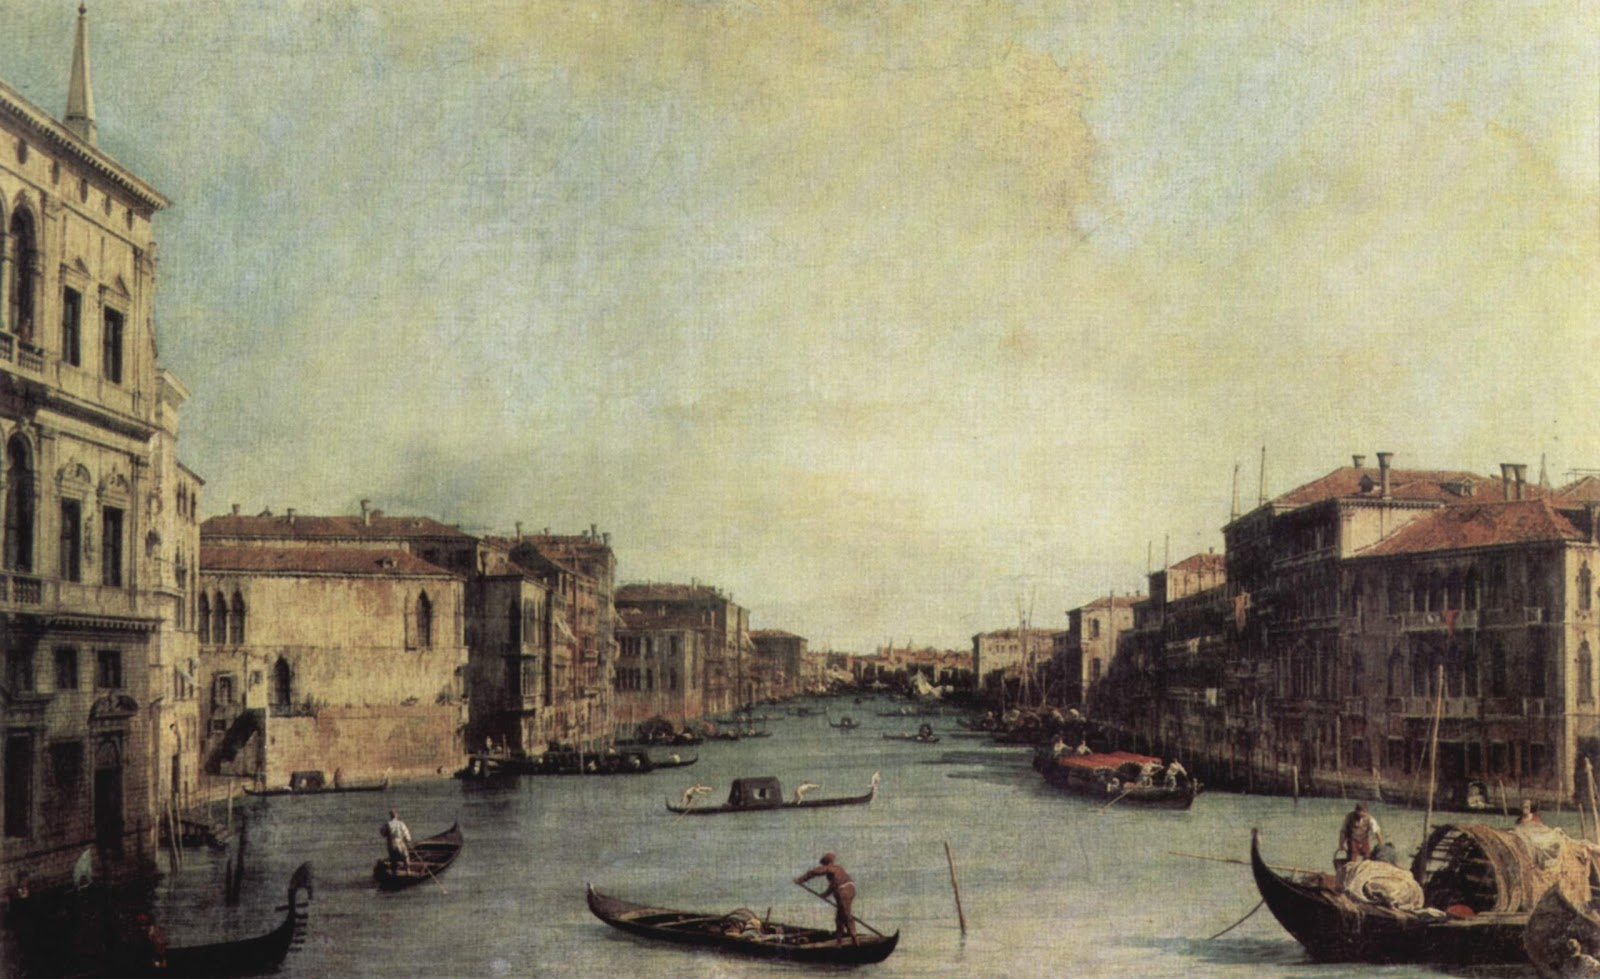 Canaletto_(II)_022.jpg